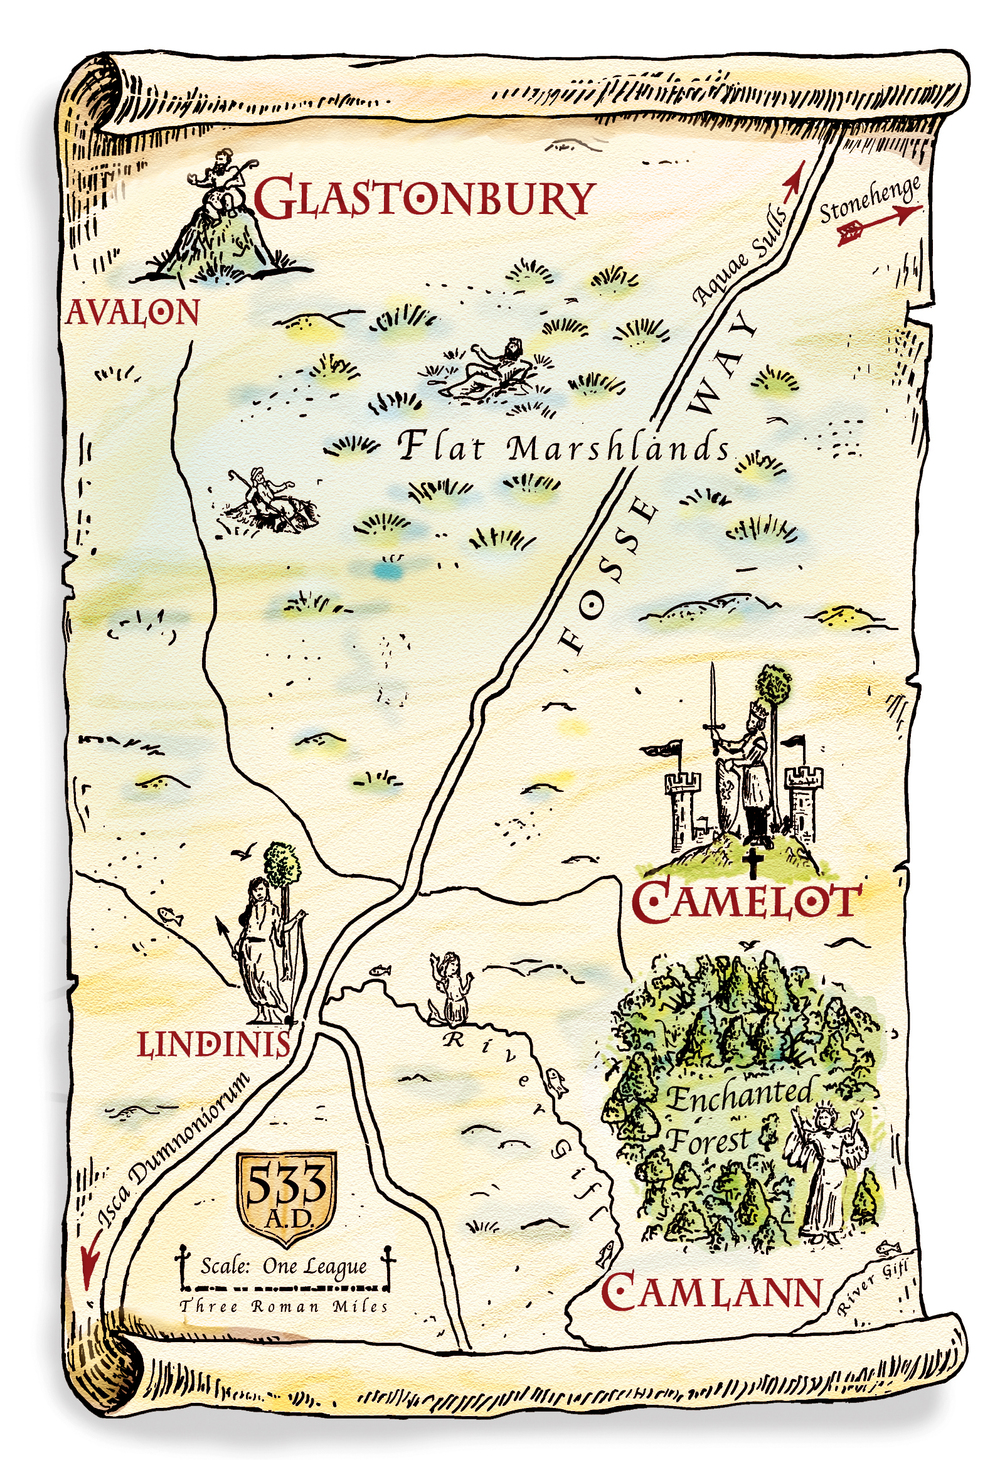 Location Map of Camelot